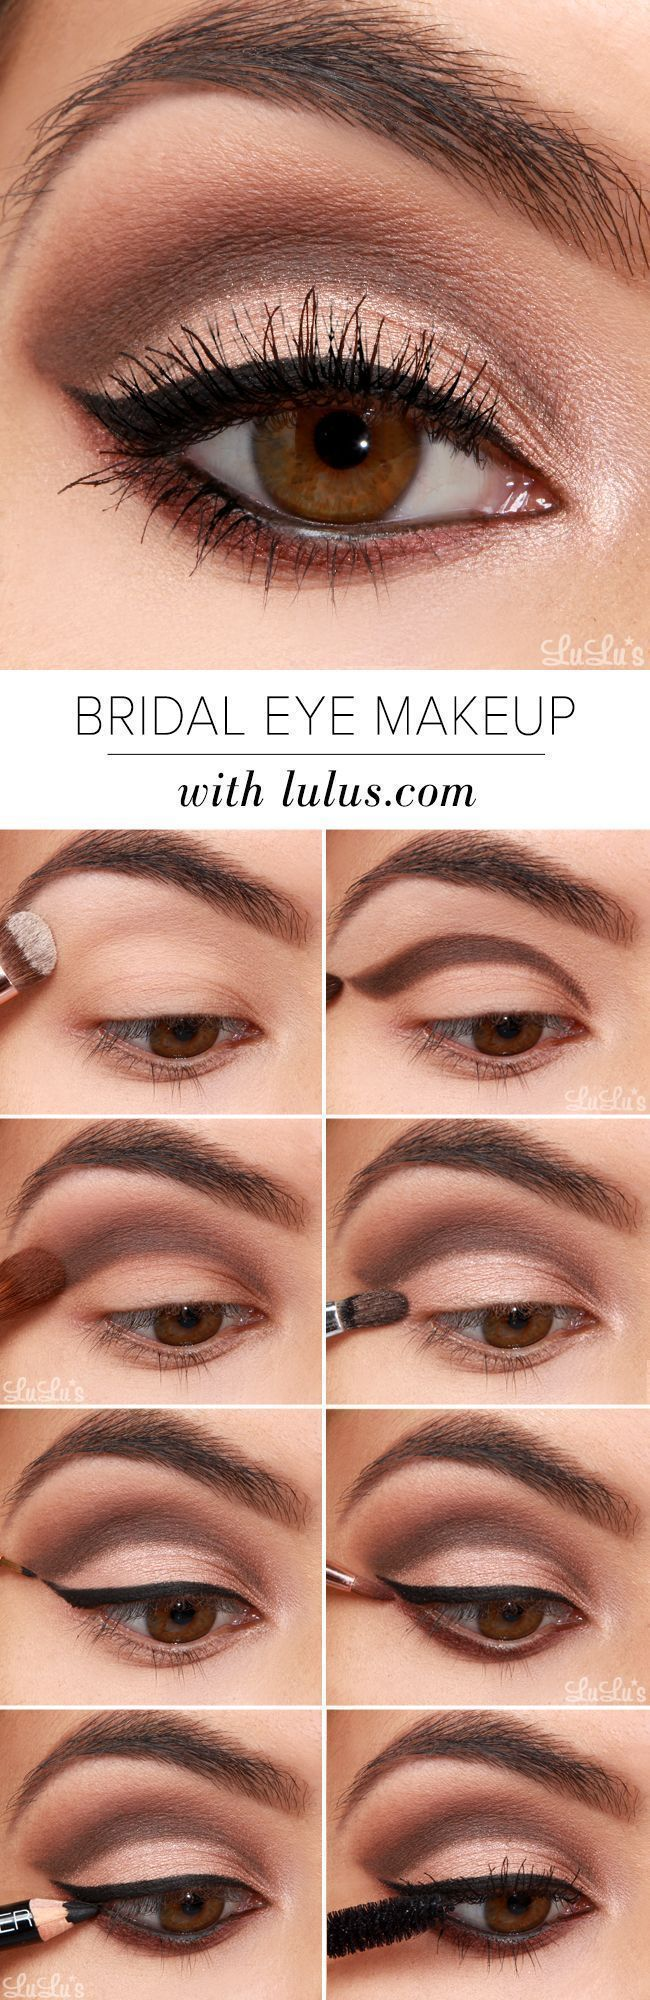 Natural eye makeup for brown eyes never fails to make you look sophisticated.   anavitaskincare.com